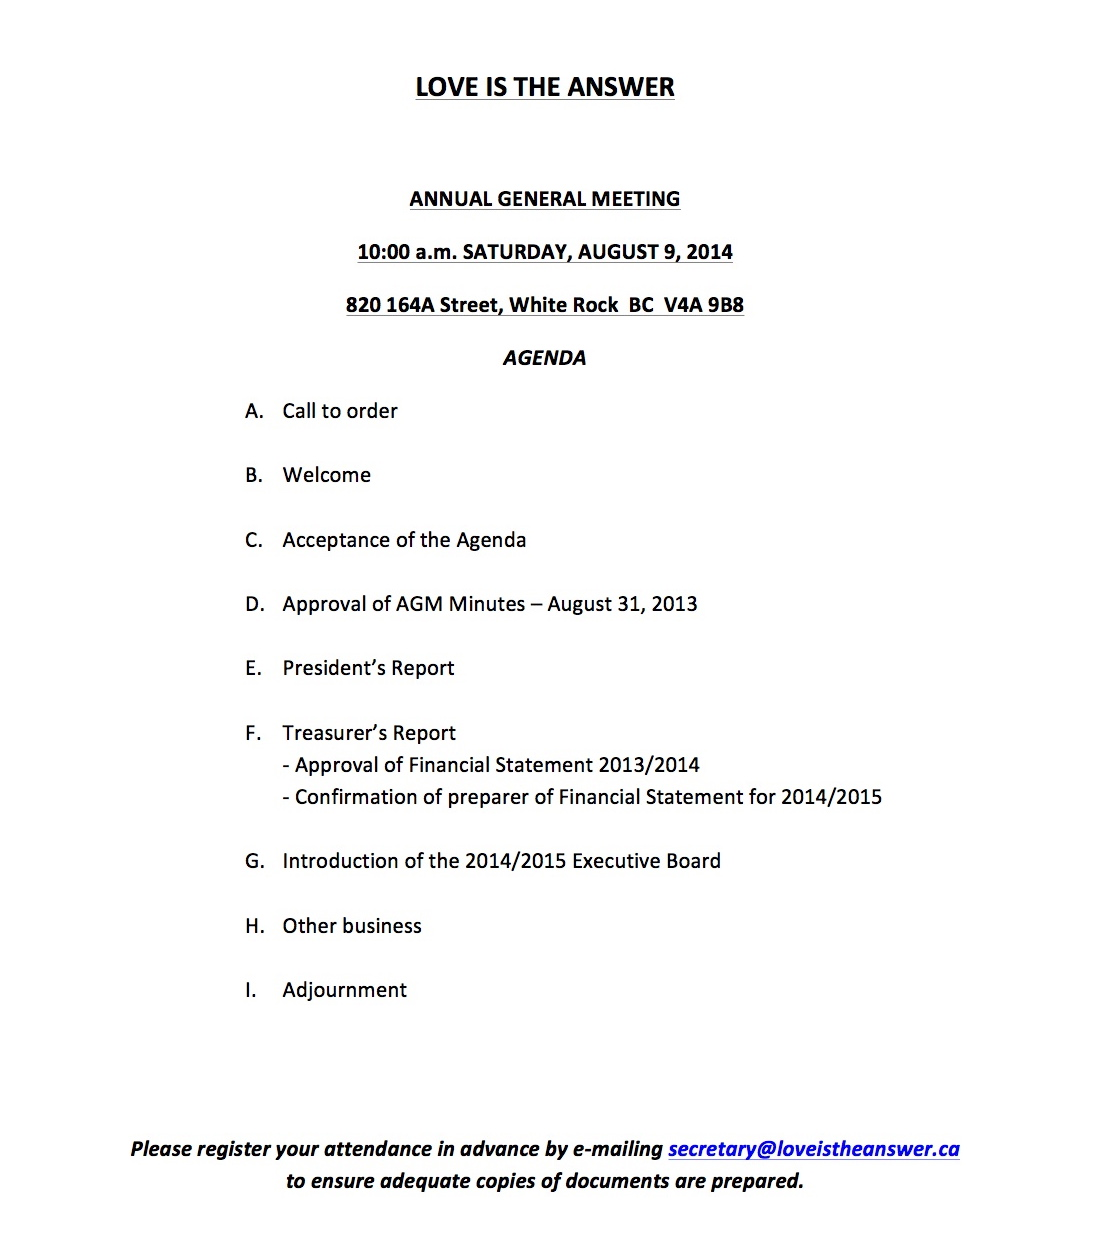 Litas annual general meeting aug 9 2014 love is the answer lita agm agenda august 9 2014 altavistaventures Image collections